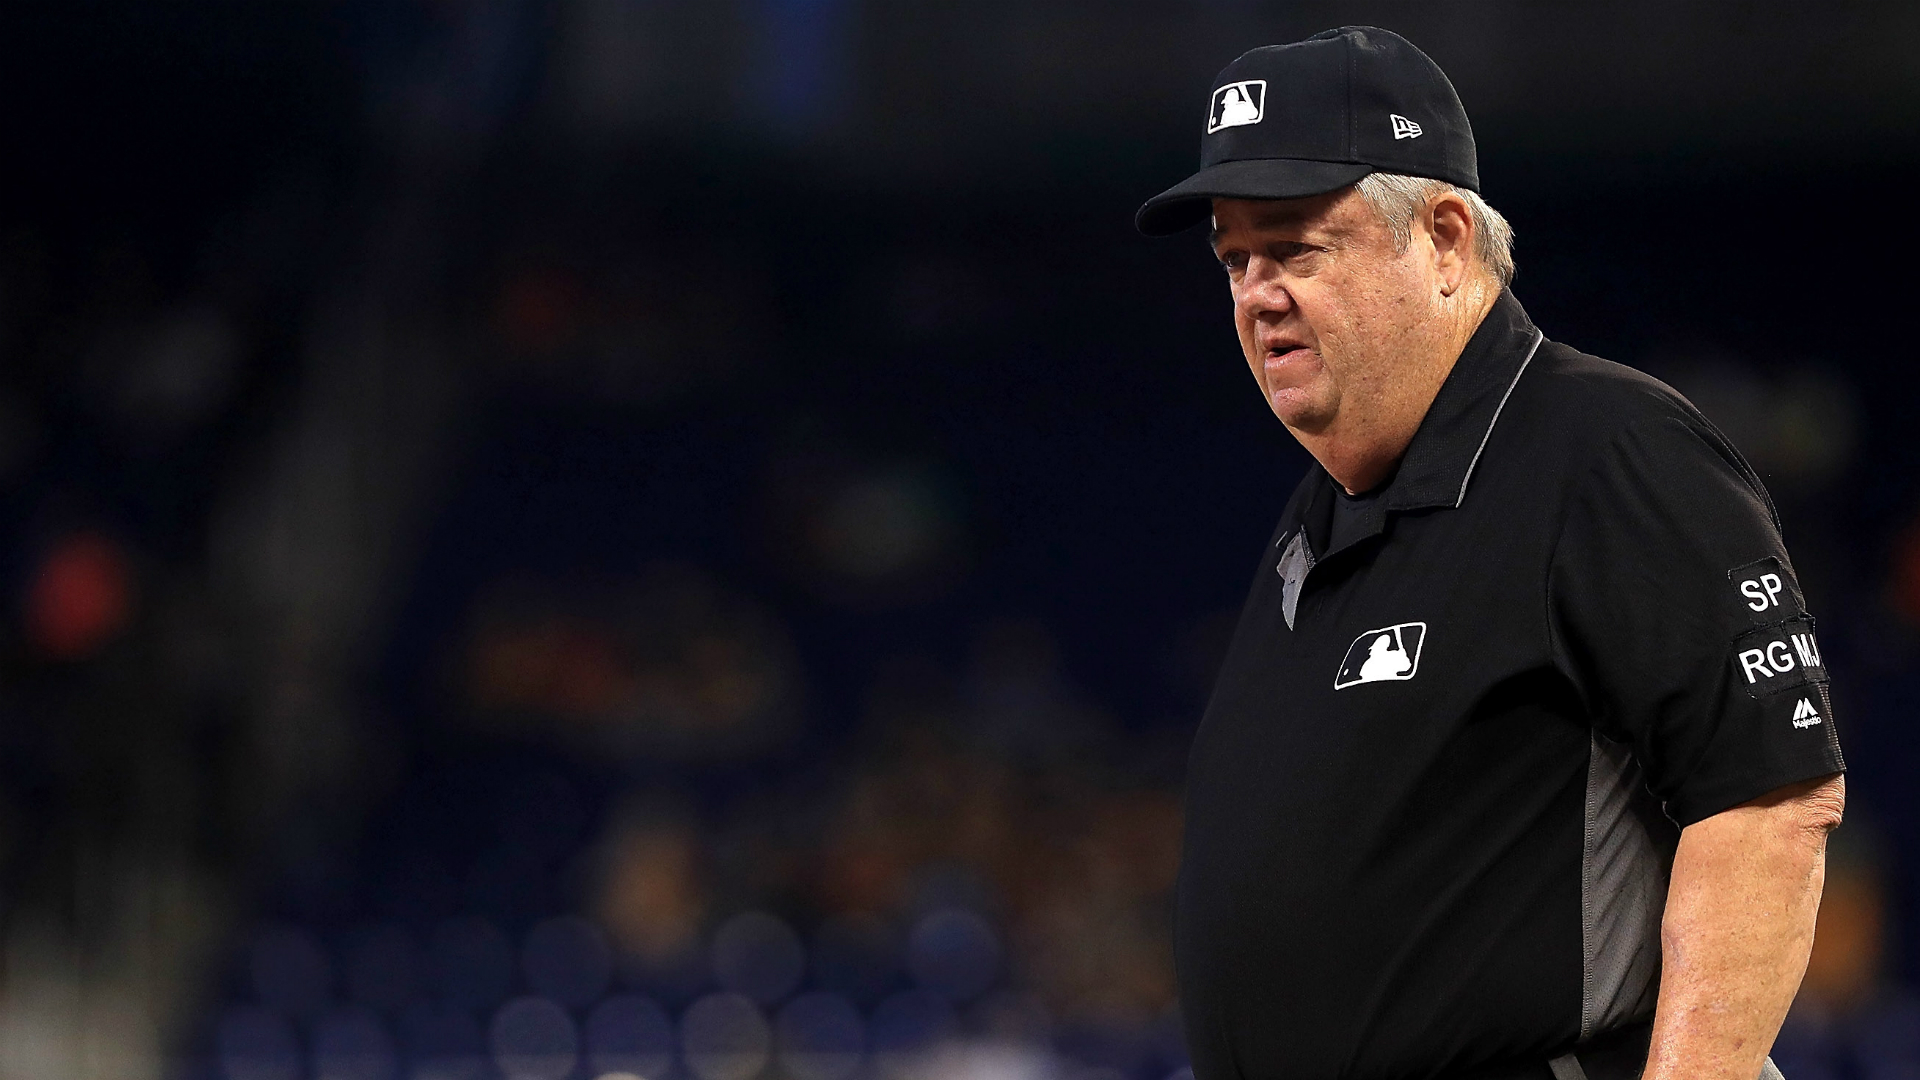 Umpires wearing white armbands until 'concerns taken seriously' by Major League Baseball